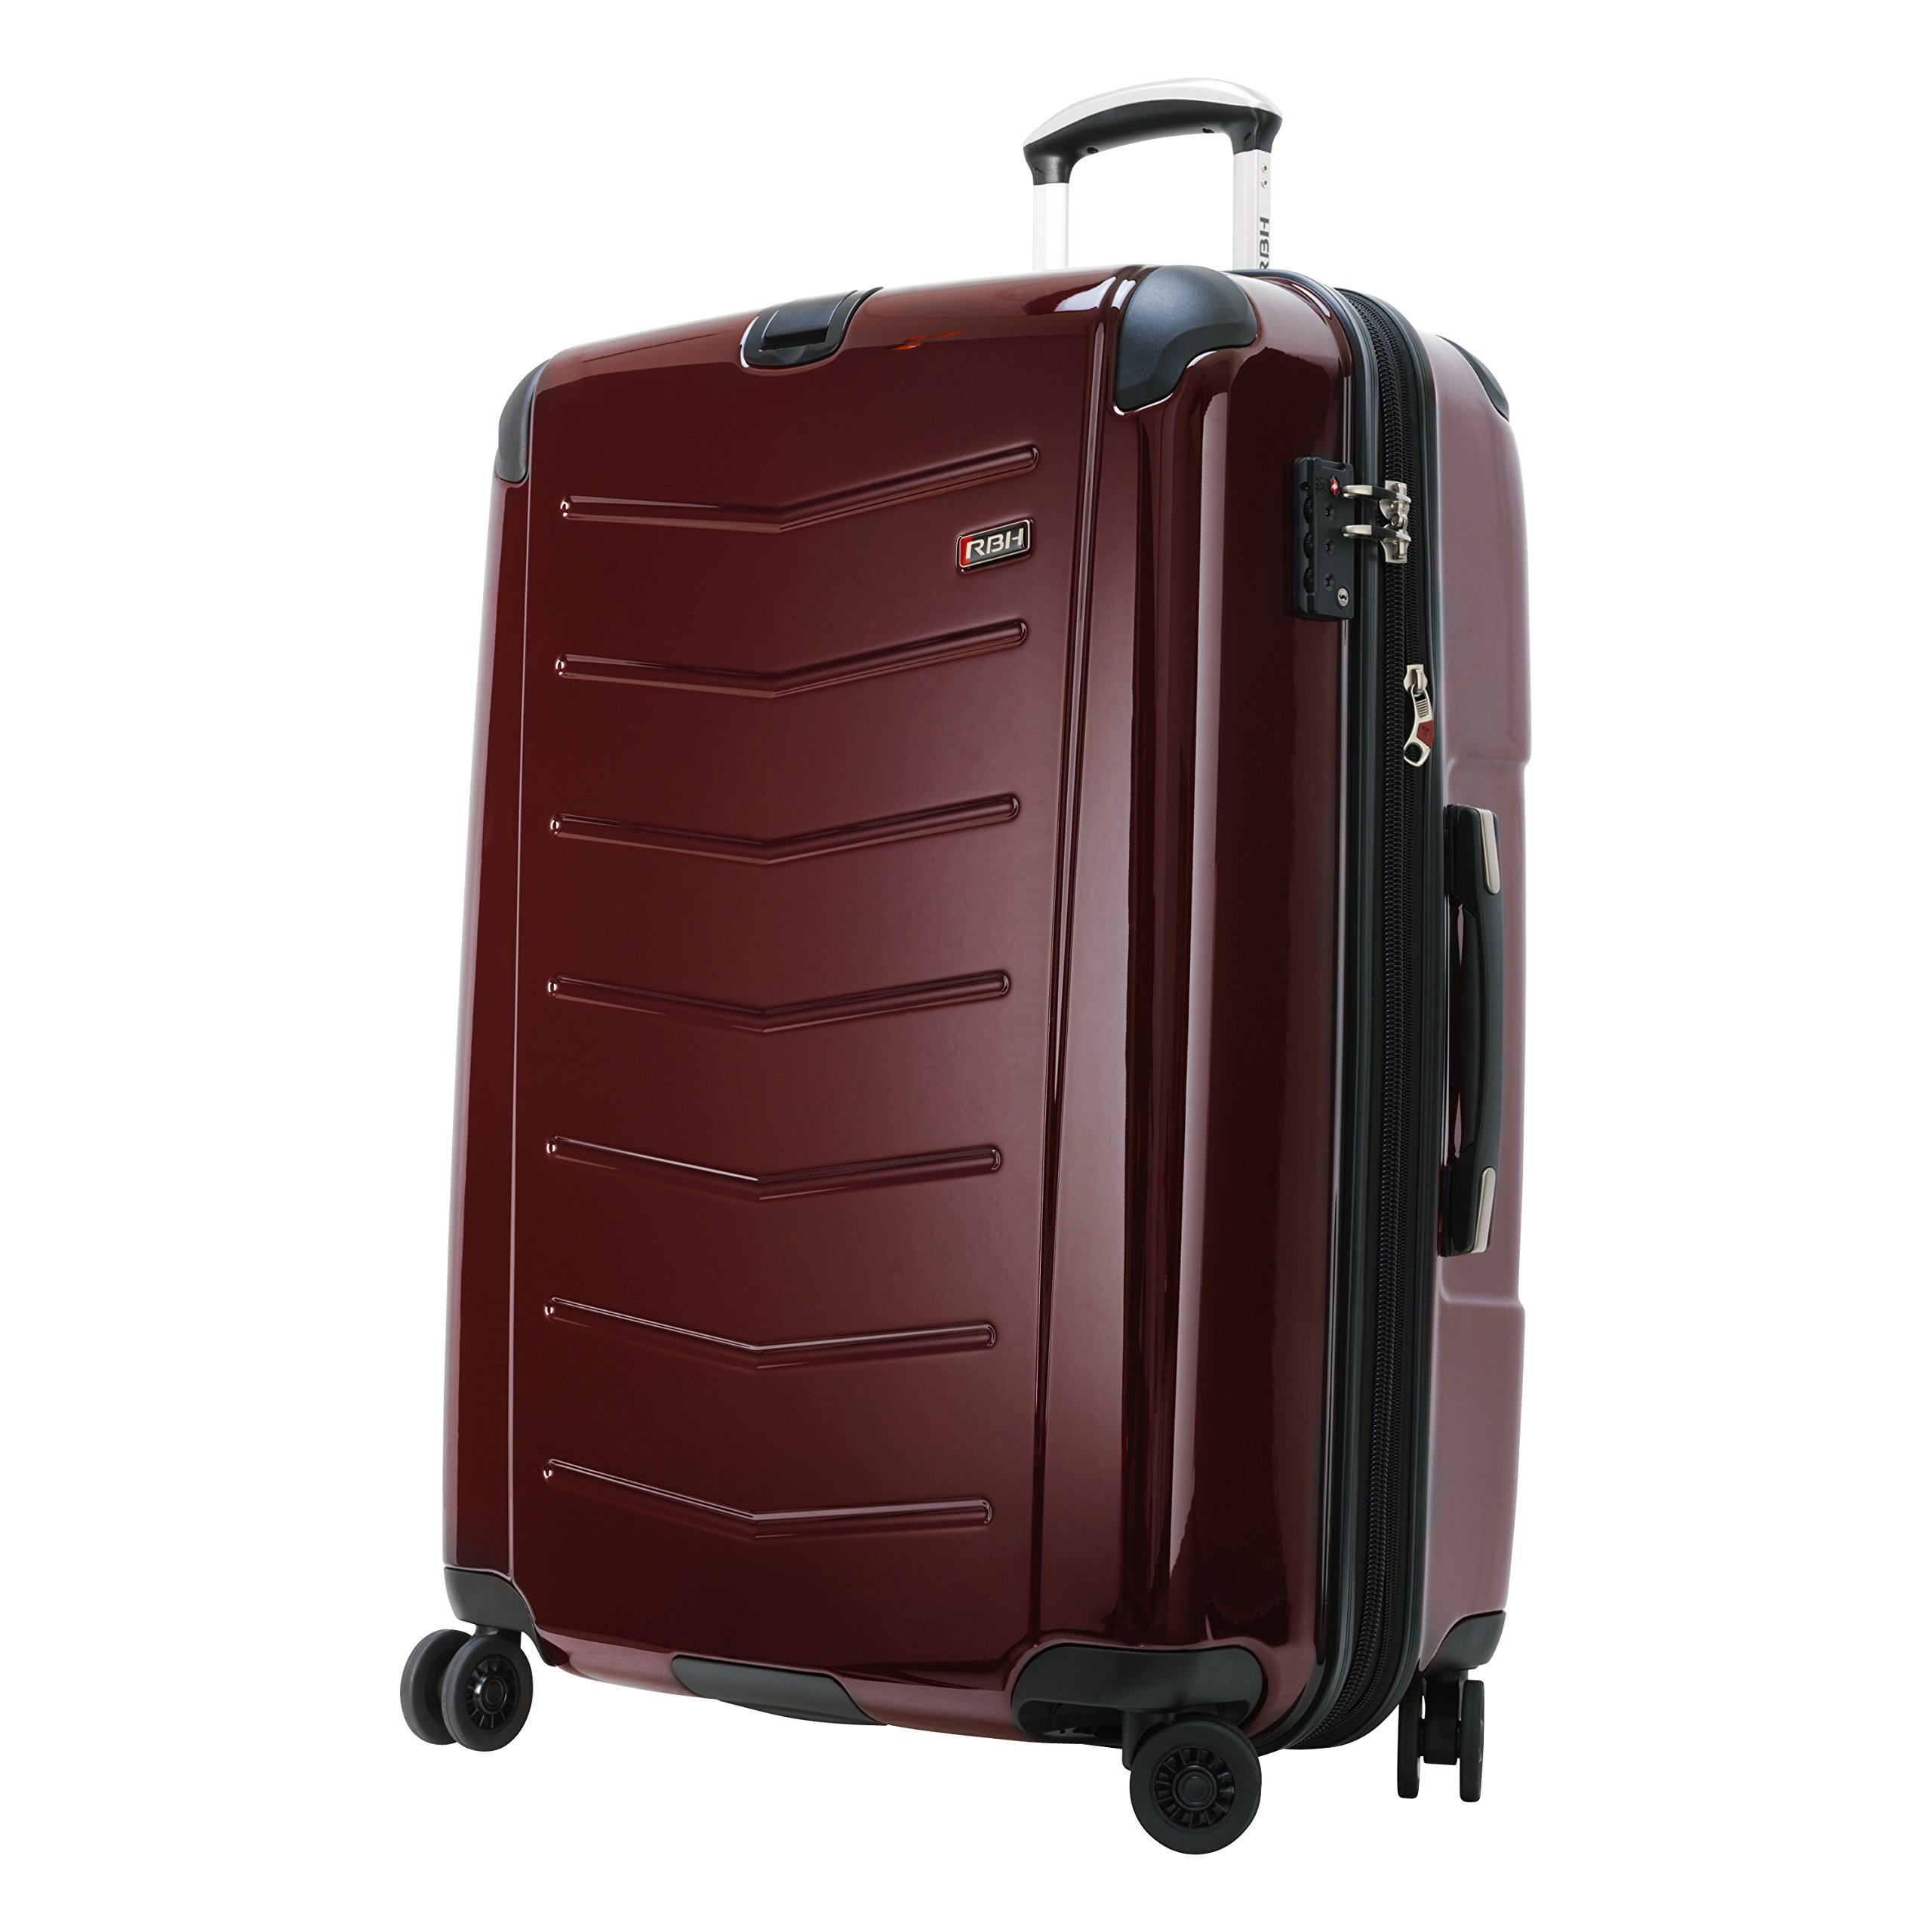 Ricardo Beverly Hills Luggage Rodeo Drive 29-Inch 4-Wheel Expandable Upright, Black Cherry, One Size by Ricardo Beverly Hills (Image #2)